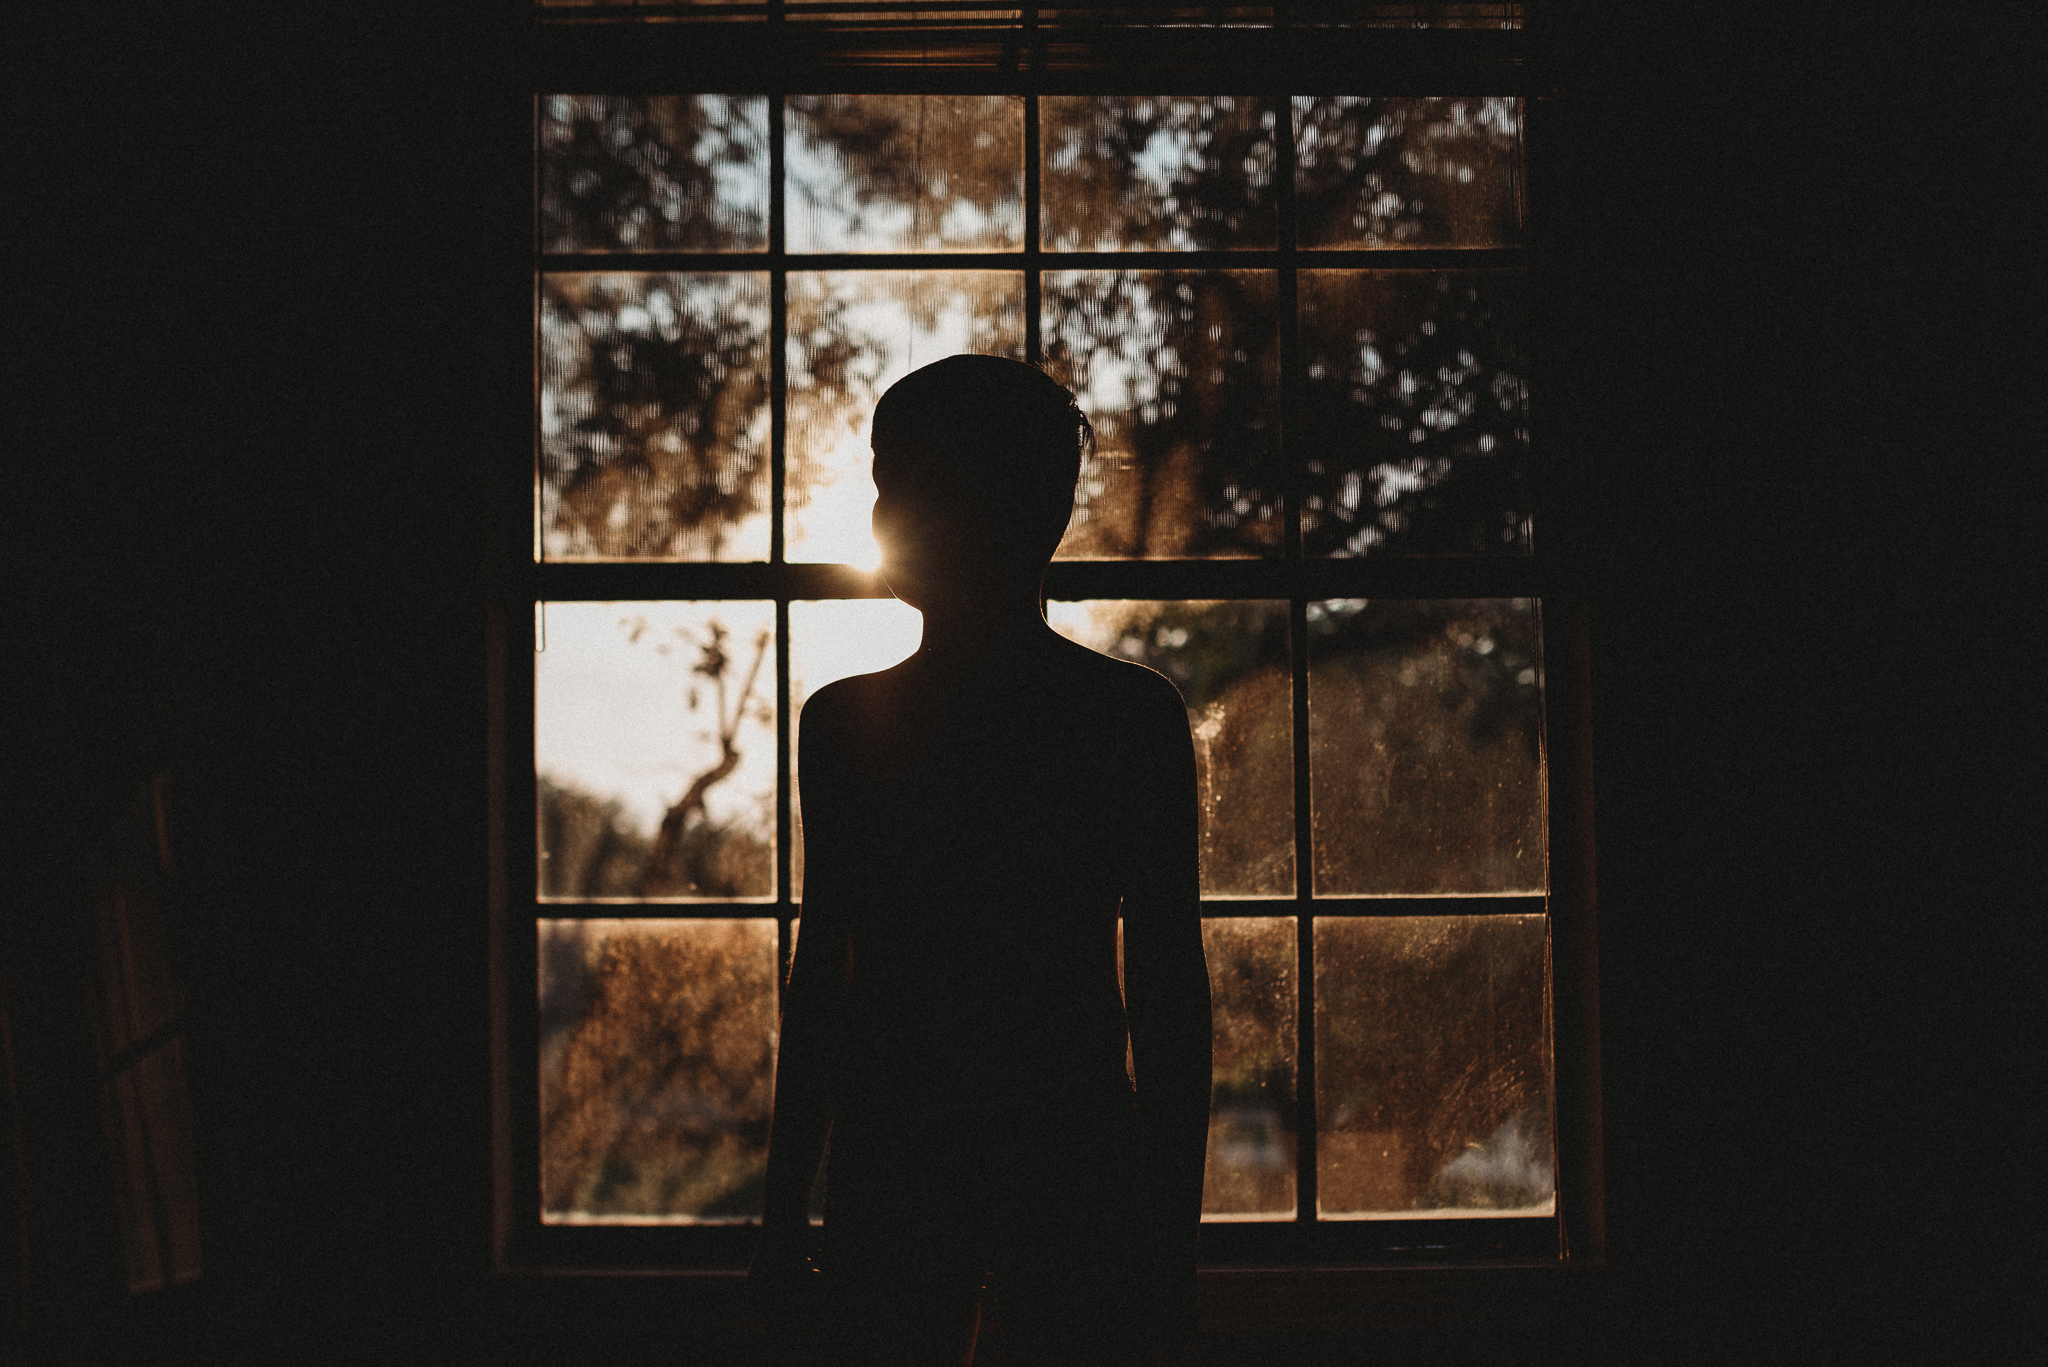 boy silhouette in window.jpg